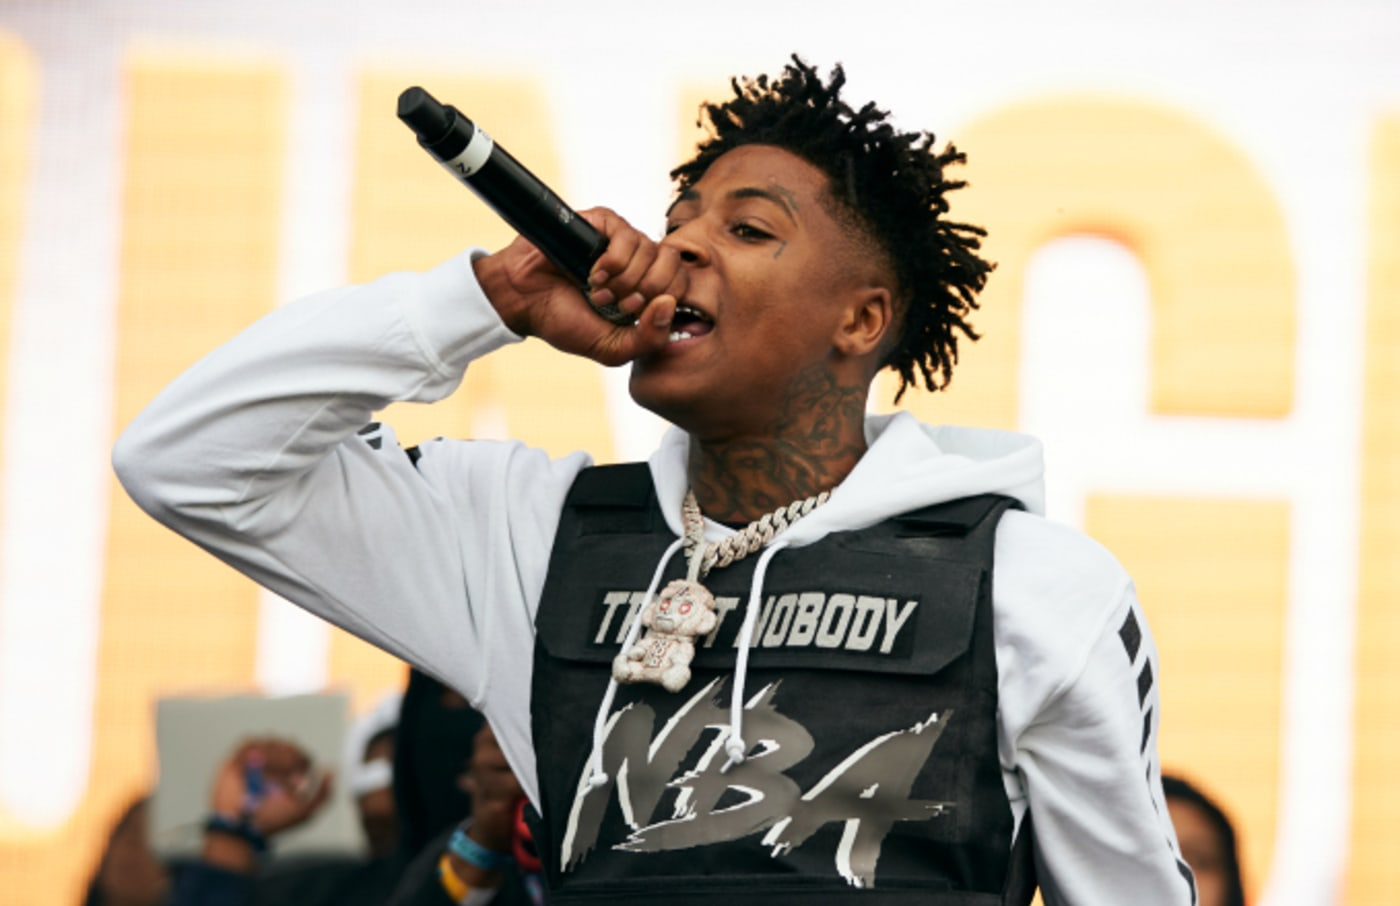 YoungBoy Never Broke Again performs during JMBLYA